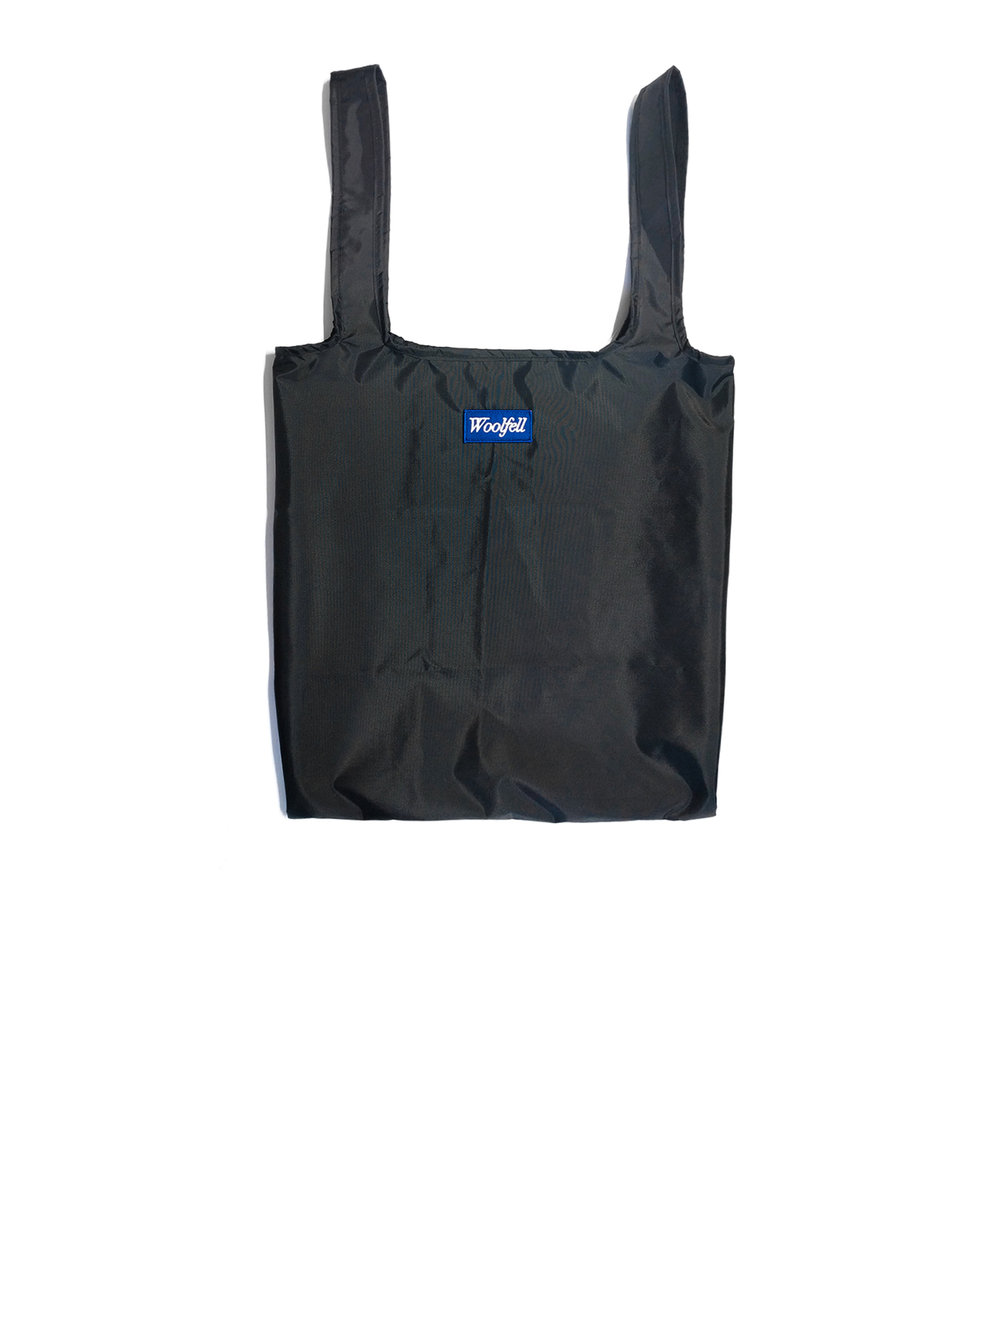 Shopping bag  - 28.00$